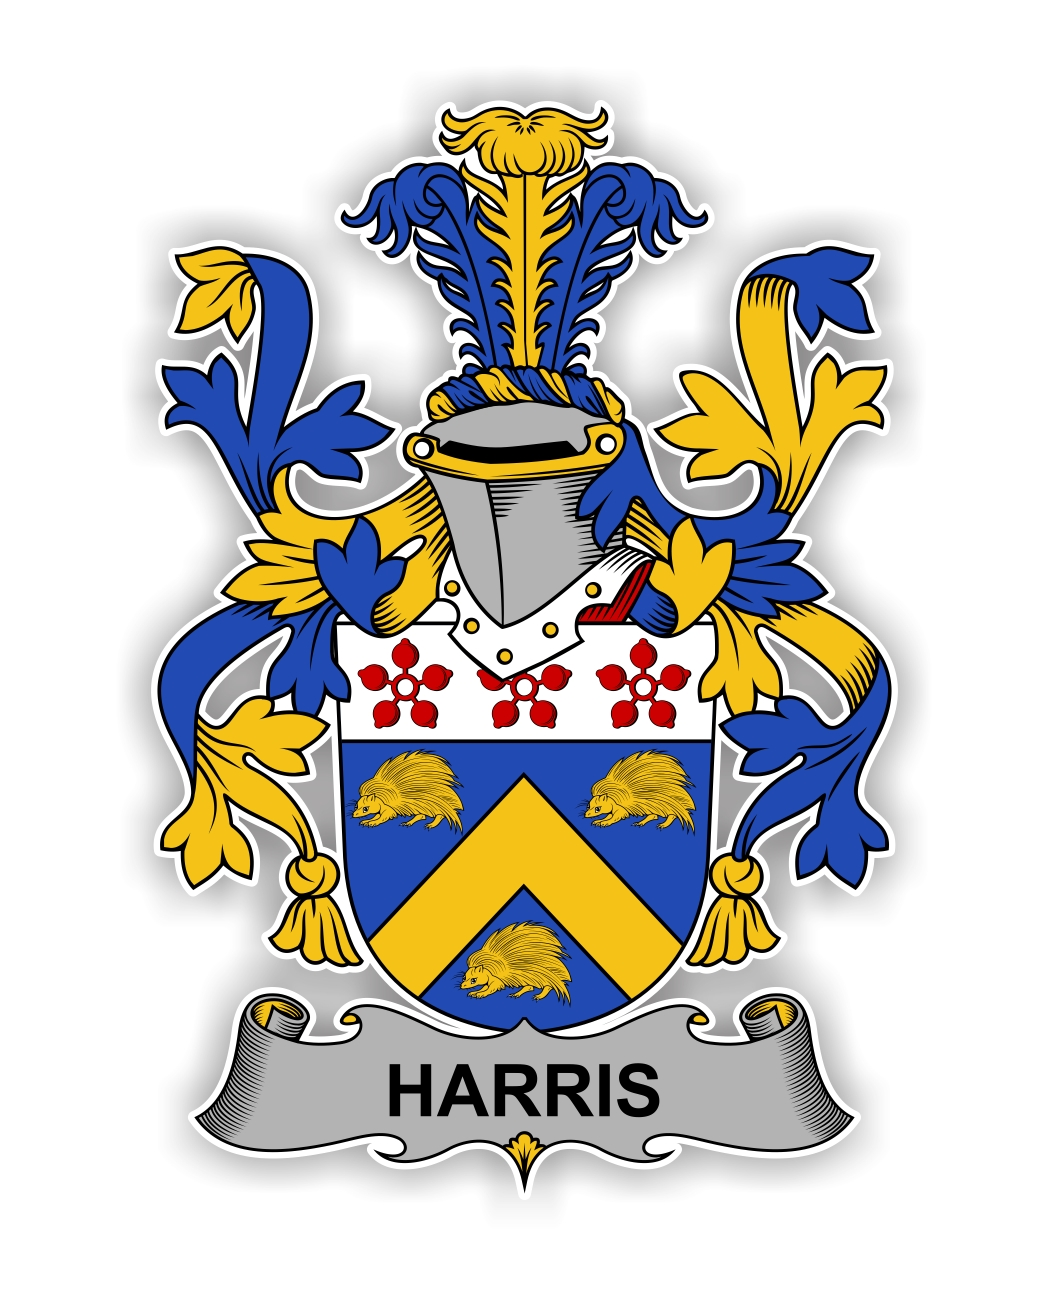 Harris Family Crest Vinyl Die Cut Decal Sticker 4